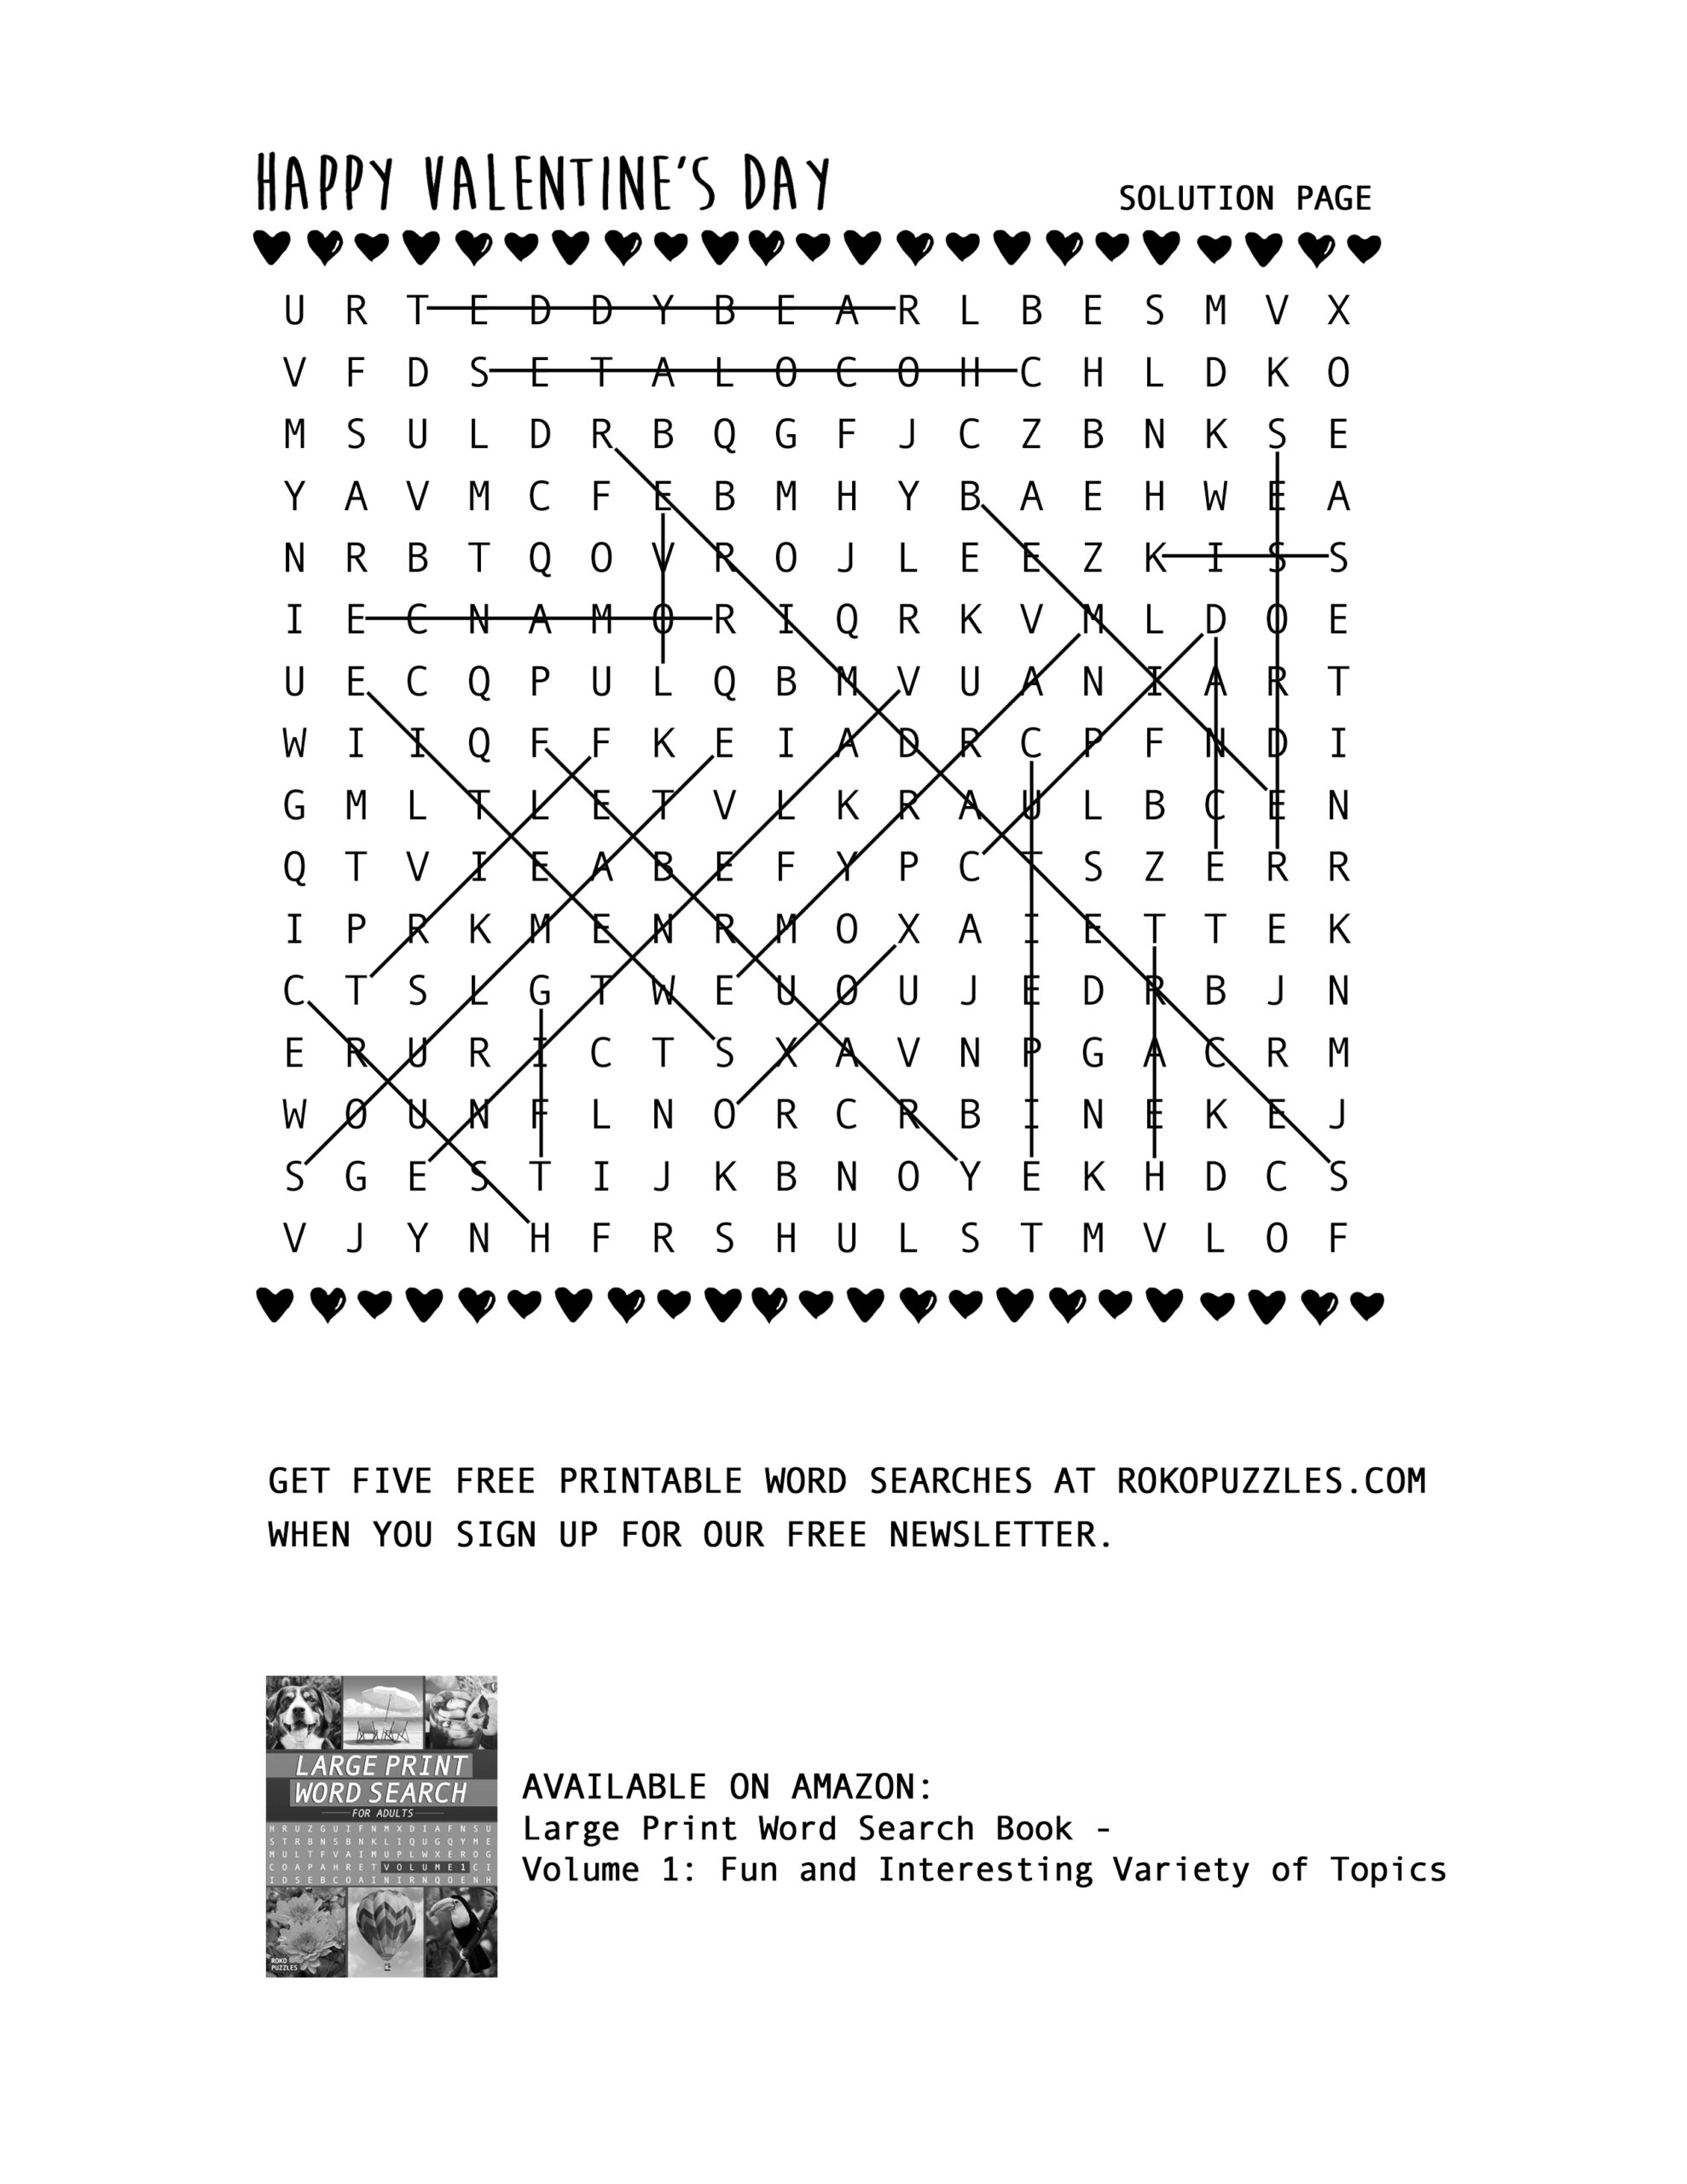 - Valentine's Day Word Search – Free Printable Download – RokoPuzzles